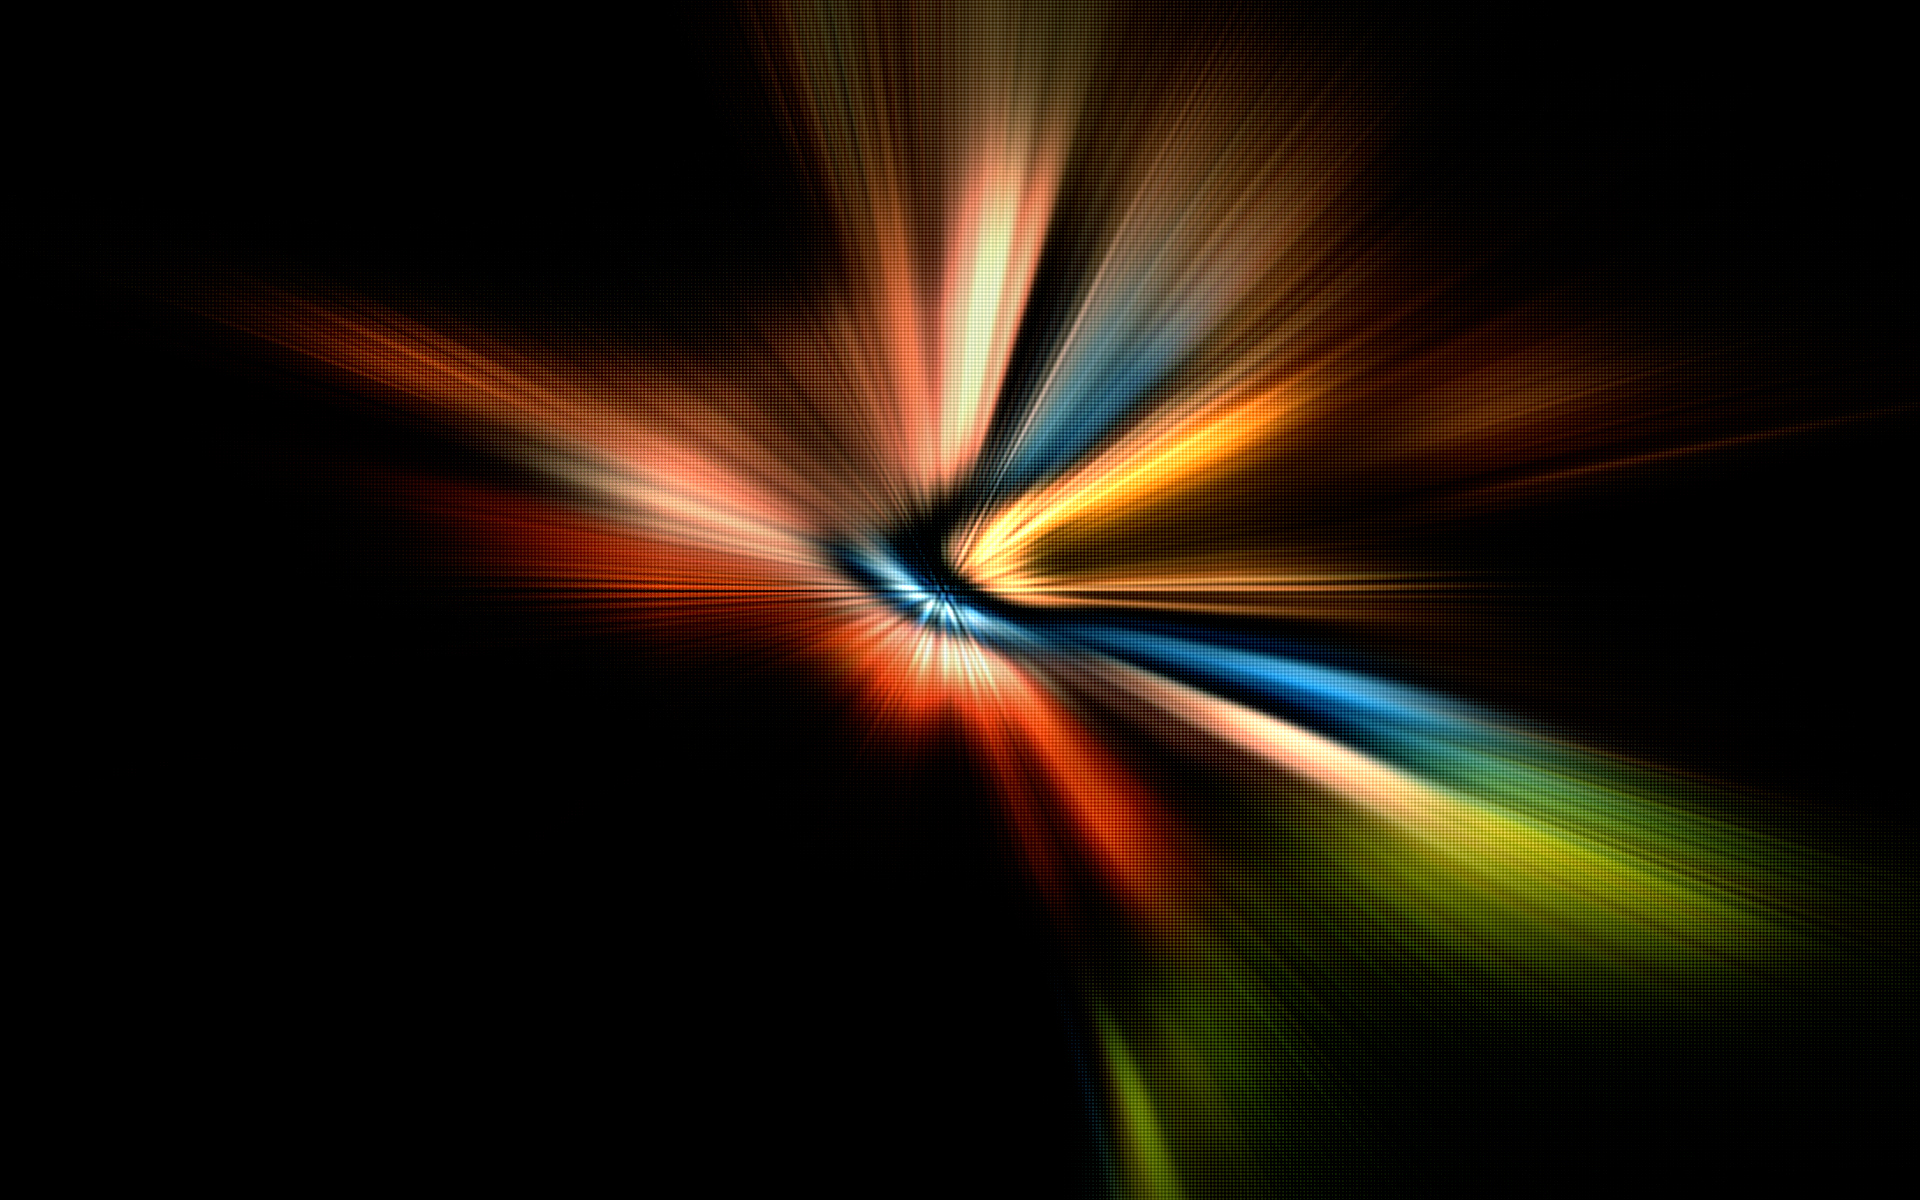 Abstract Cool Wallpaper 1920x1200 44645